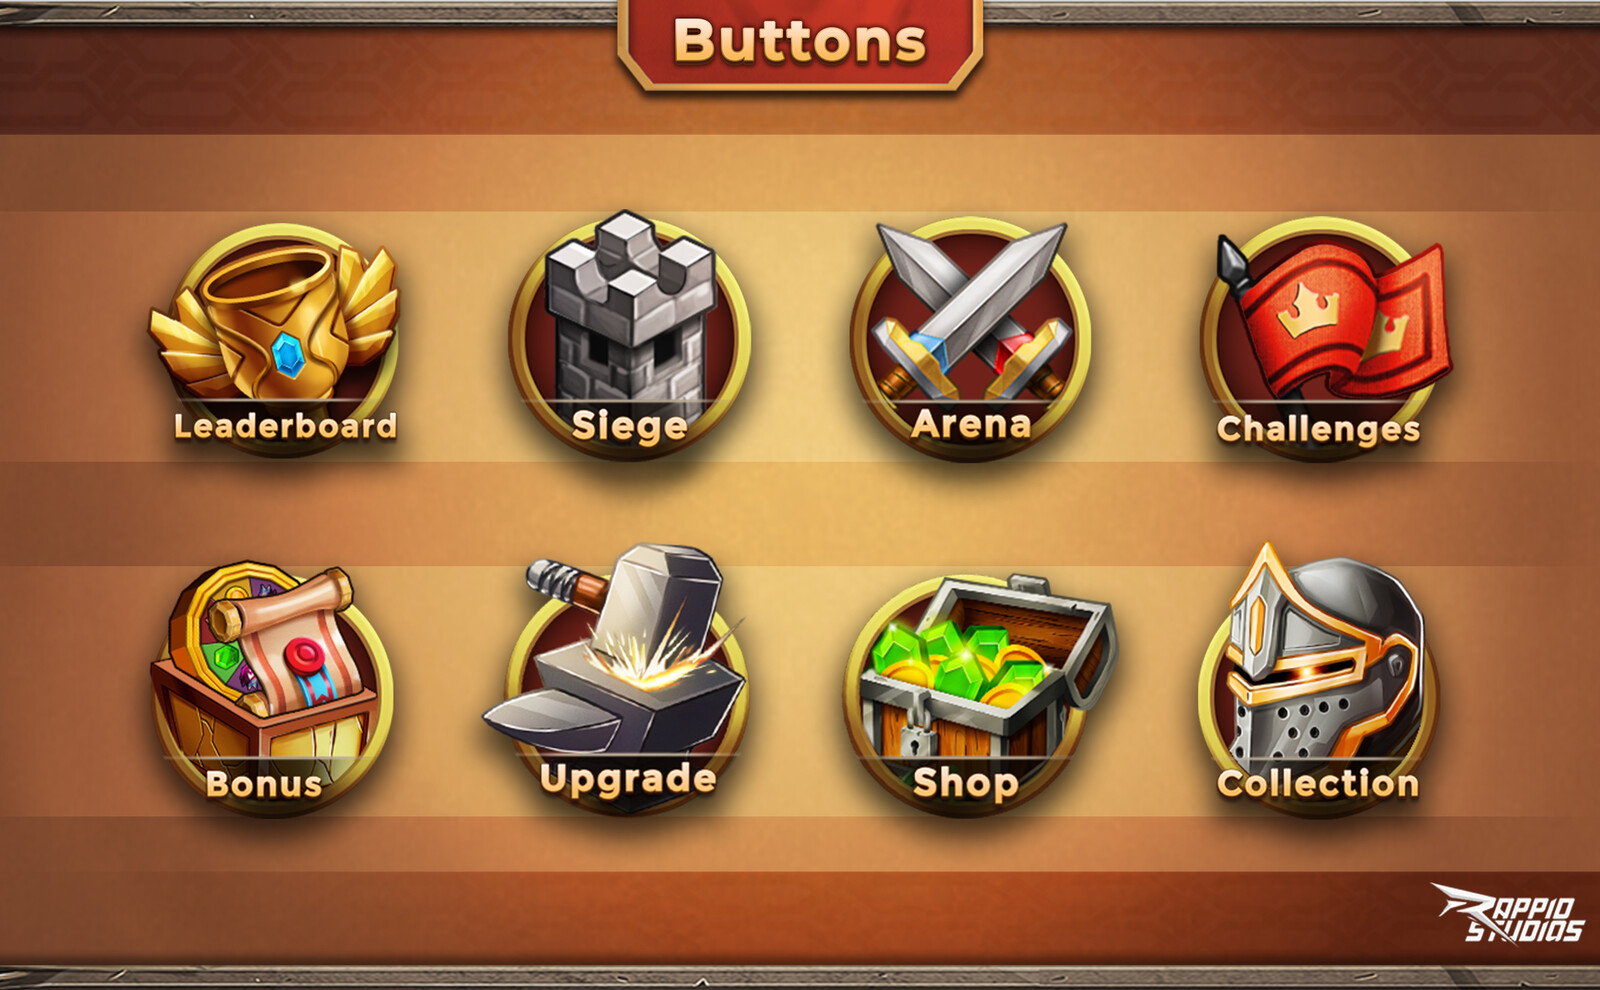 Various buttons used in the game